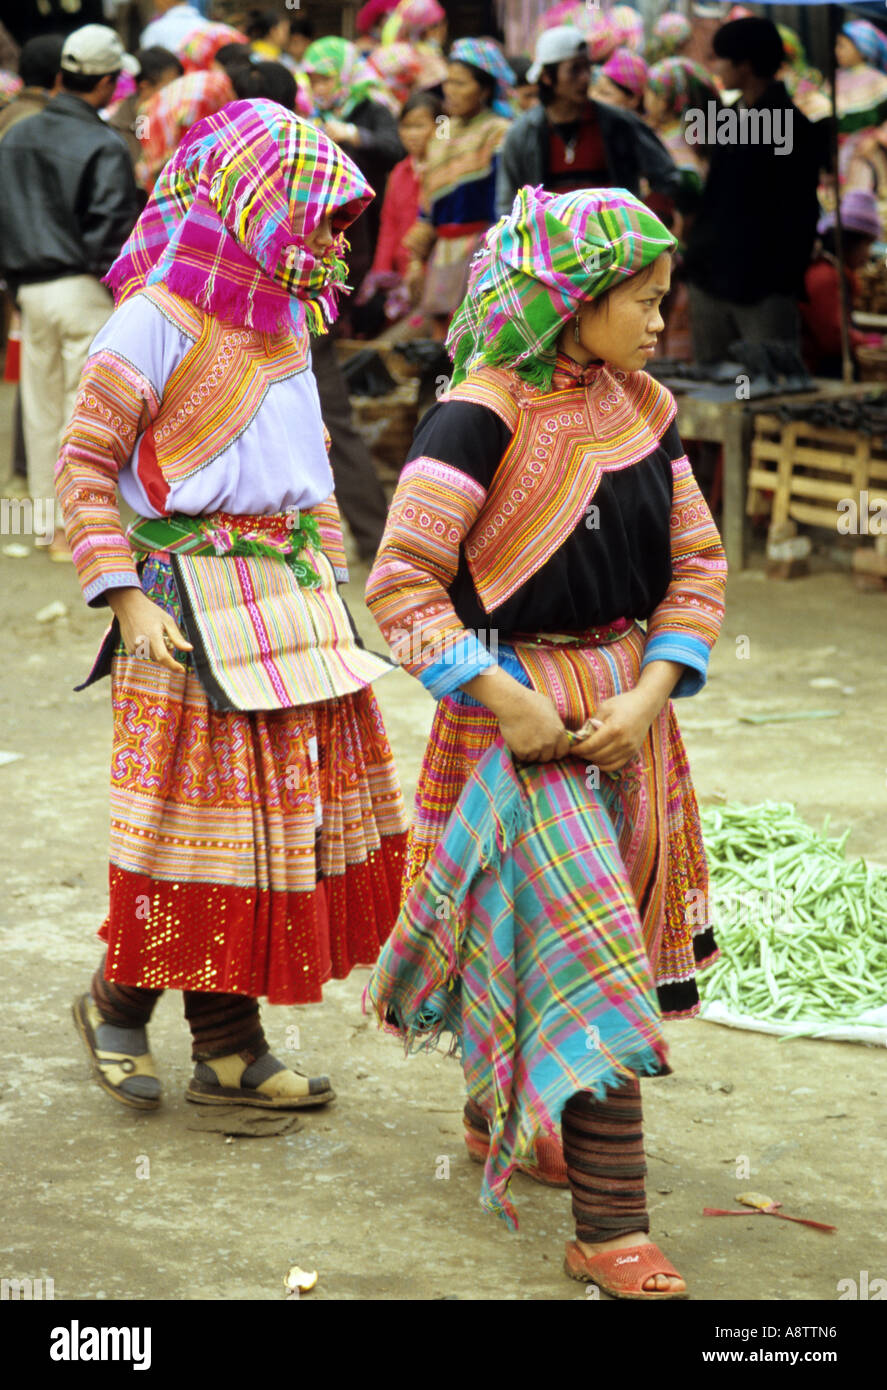 Two young traditionally dressed Flower Hmong women walking through the Sunday market, Bac Ha, NW Viet Nam Stock Photo